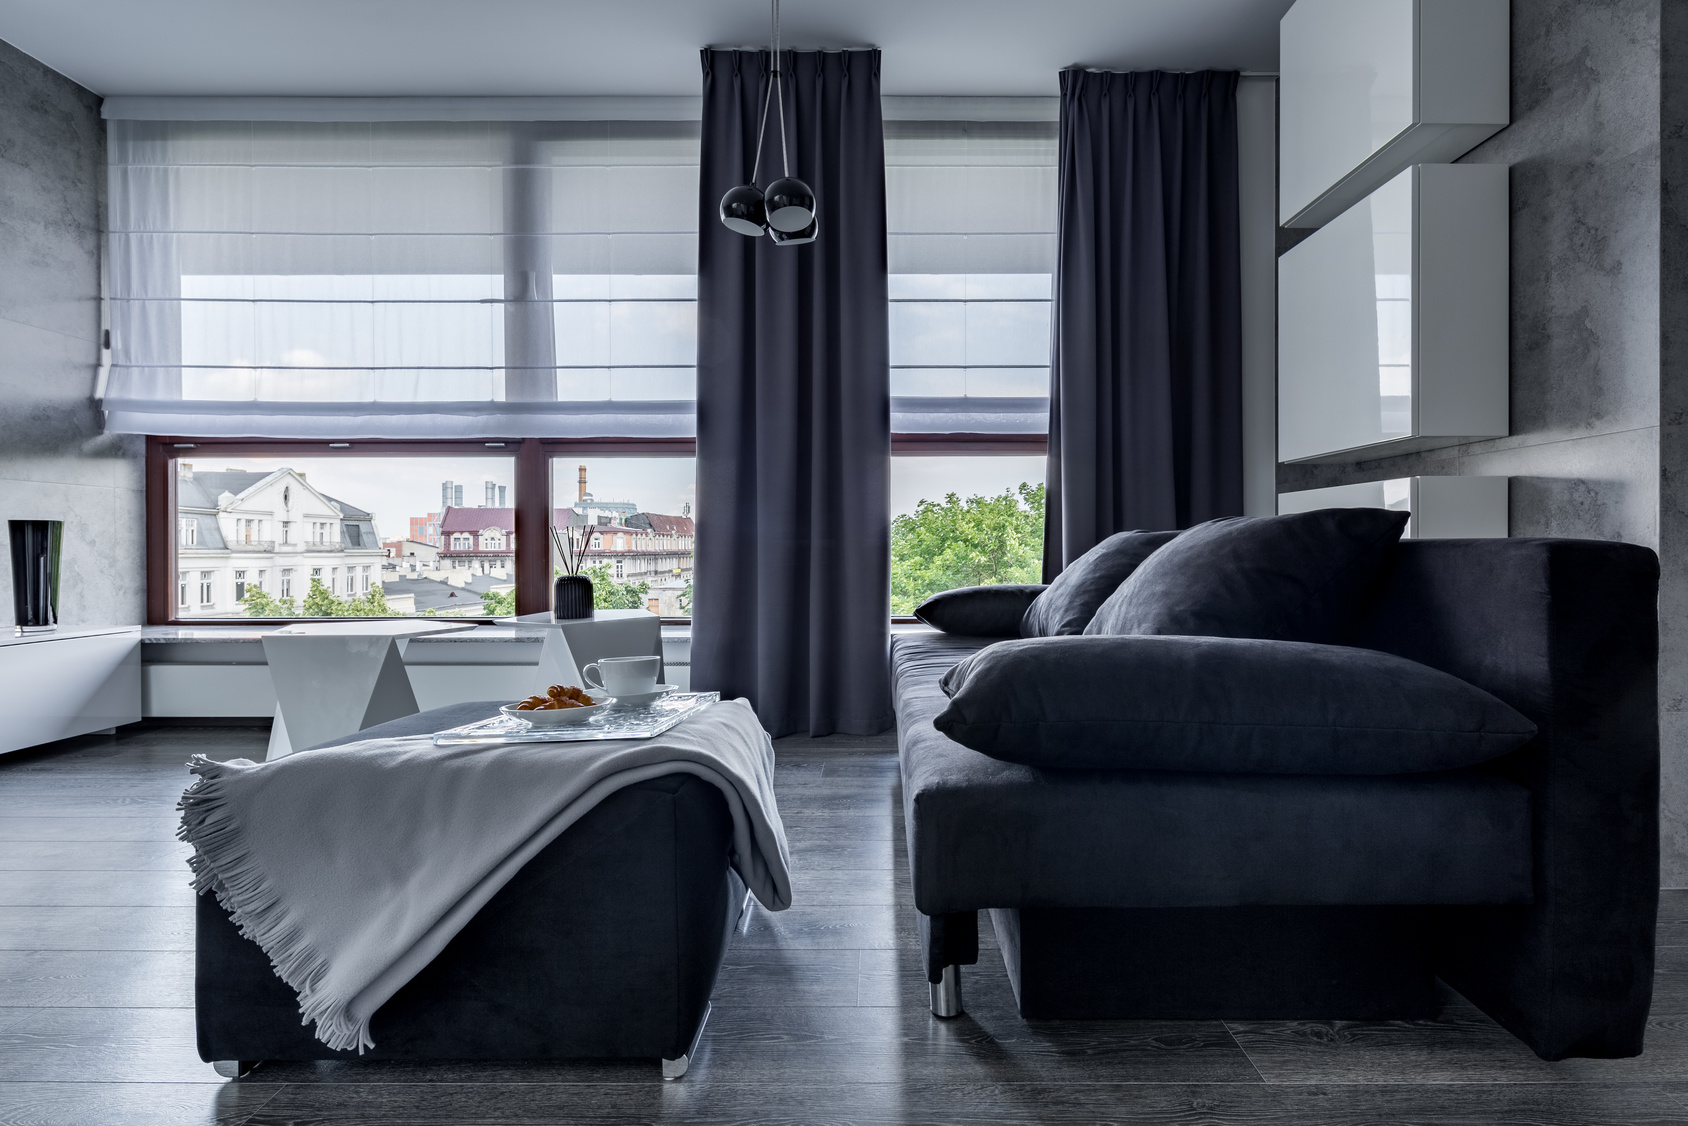 Gray couch and pouf